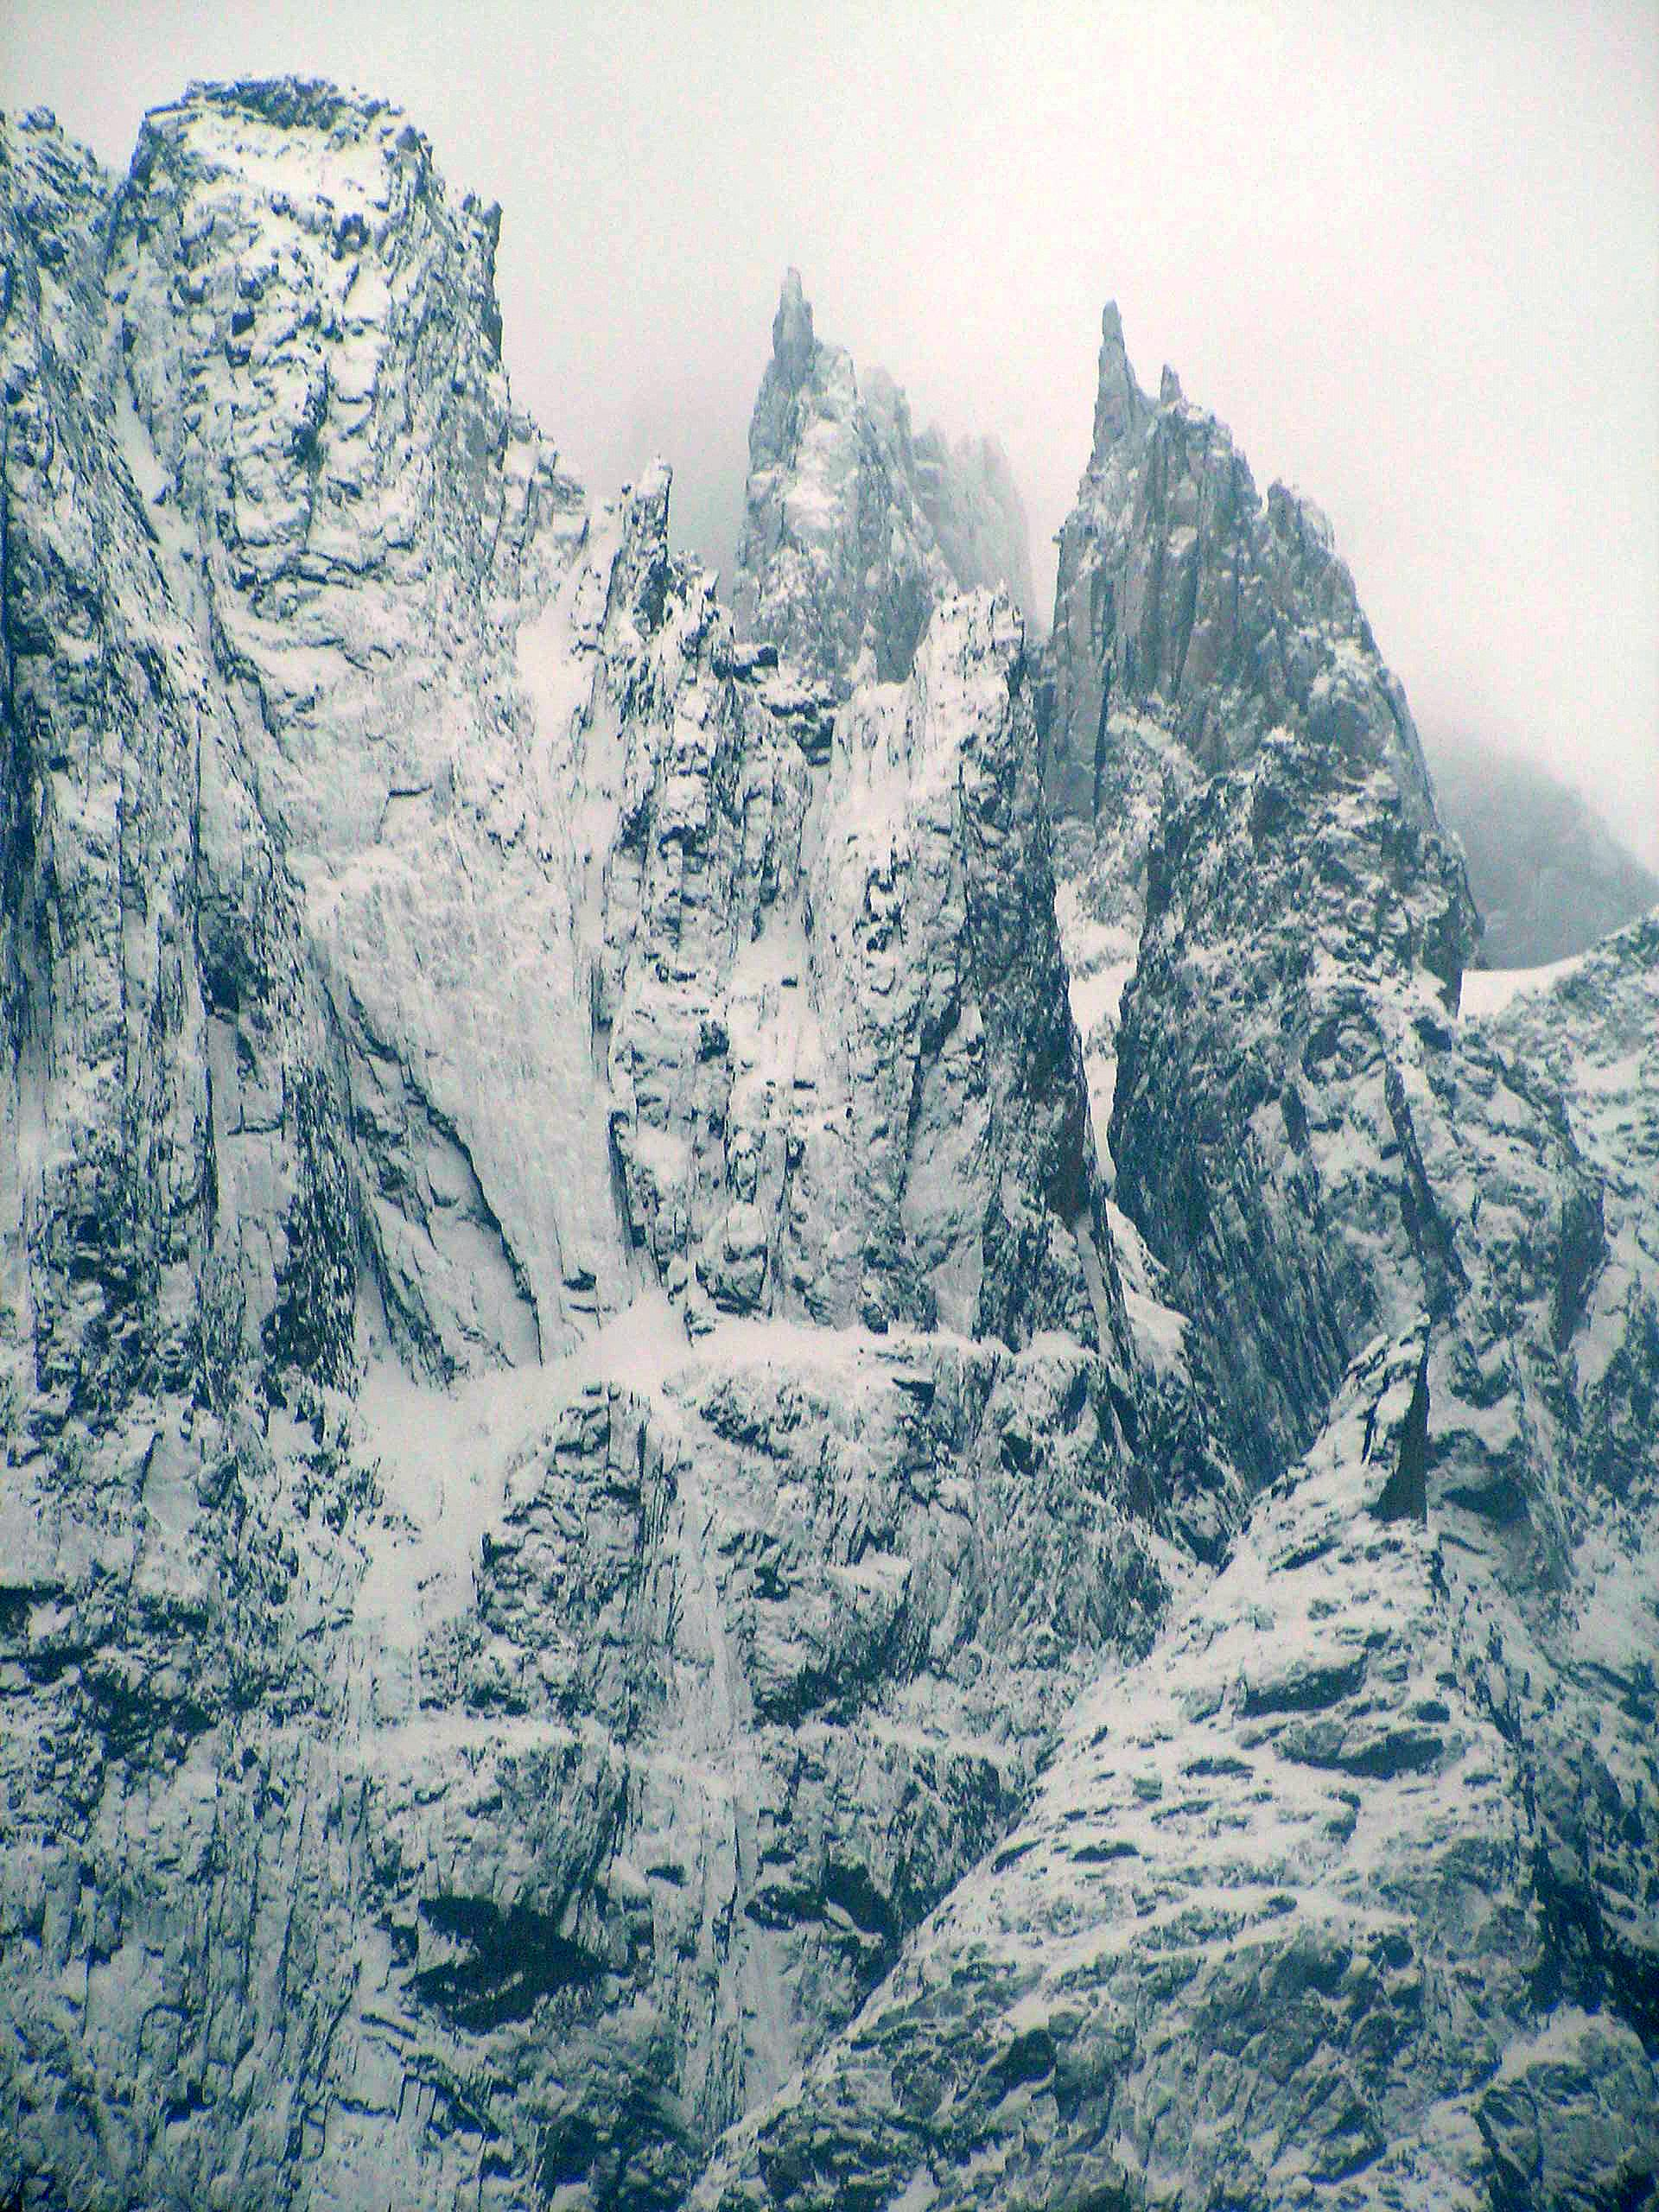 http://upload.wikimedia.org/wikipedia/commons/f/fd/Aappilattoq_mountains_1.JPG